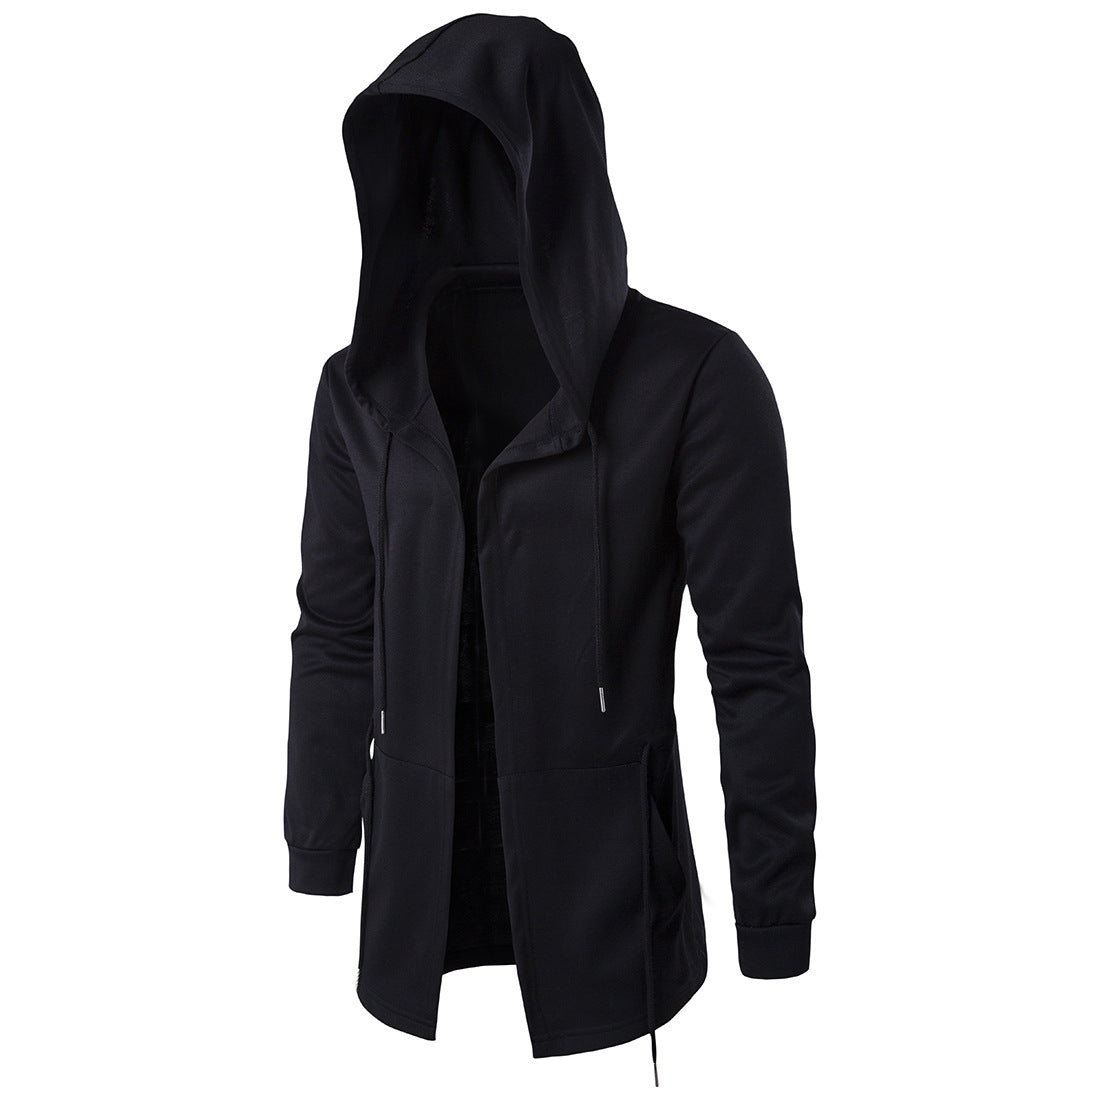 Plus Size Long Cloak Hooded Jacket